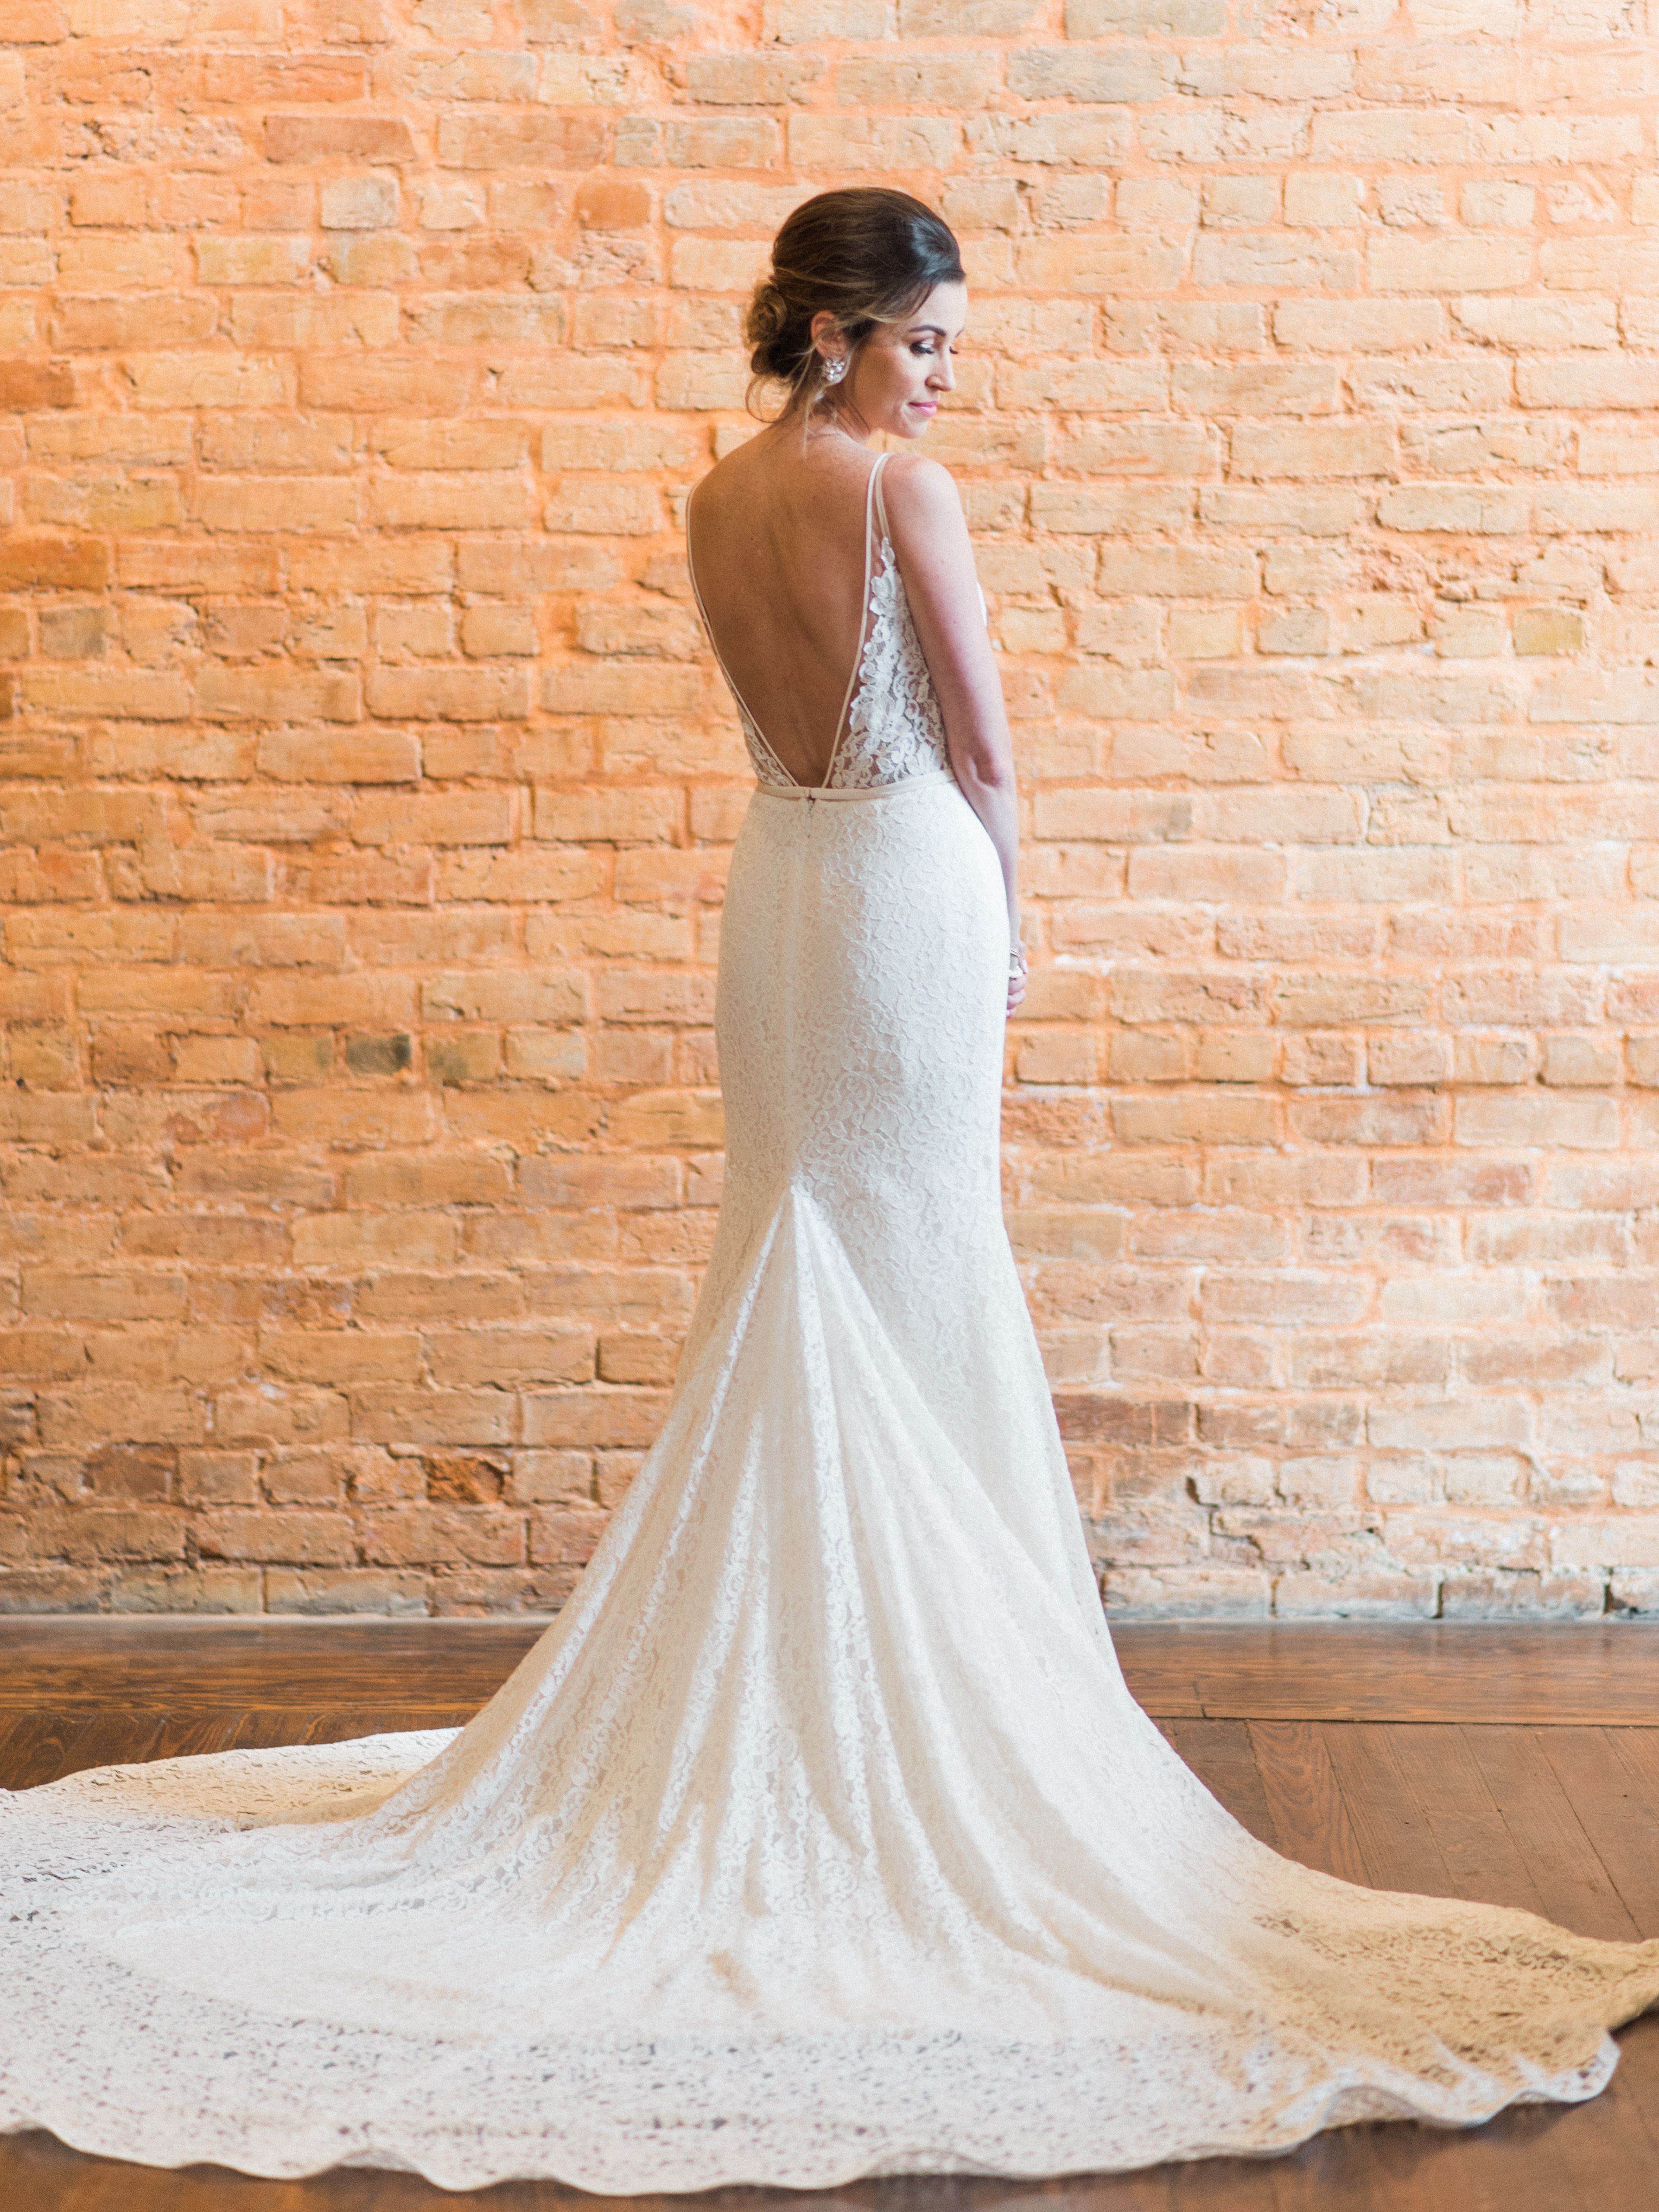 Hair Up Or Down With Backless Dress Low Back Dresses Wedding Hairstyles Backless Wedding